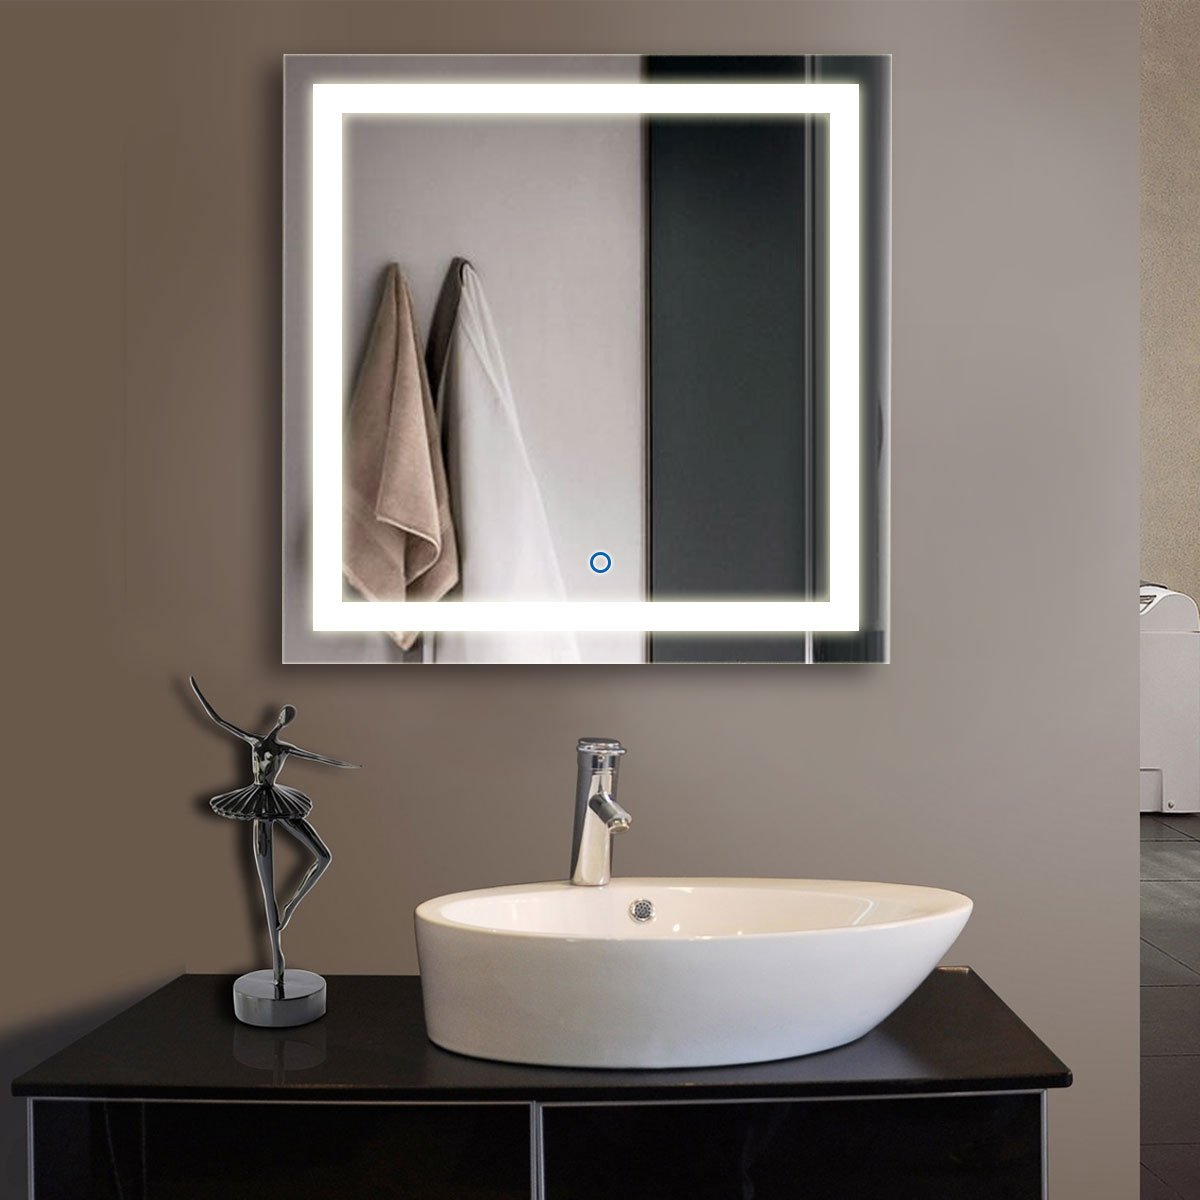 Amazon.com: 48 x 36 In Horizontal LED Bathroom Silvered Mirror with ...